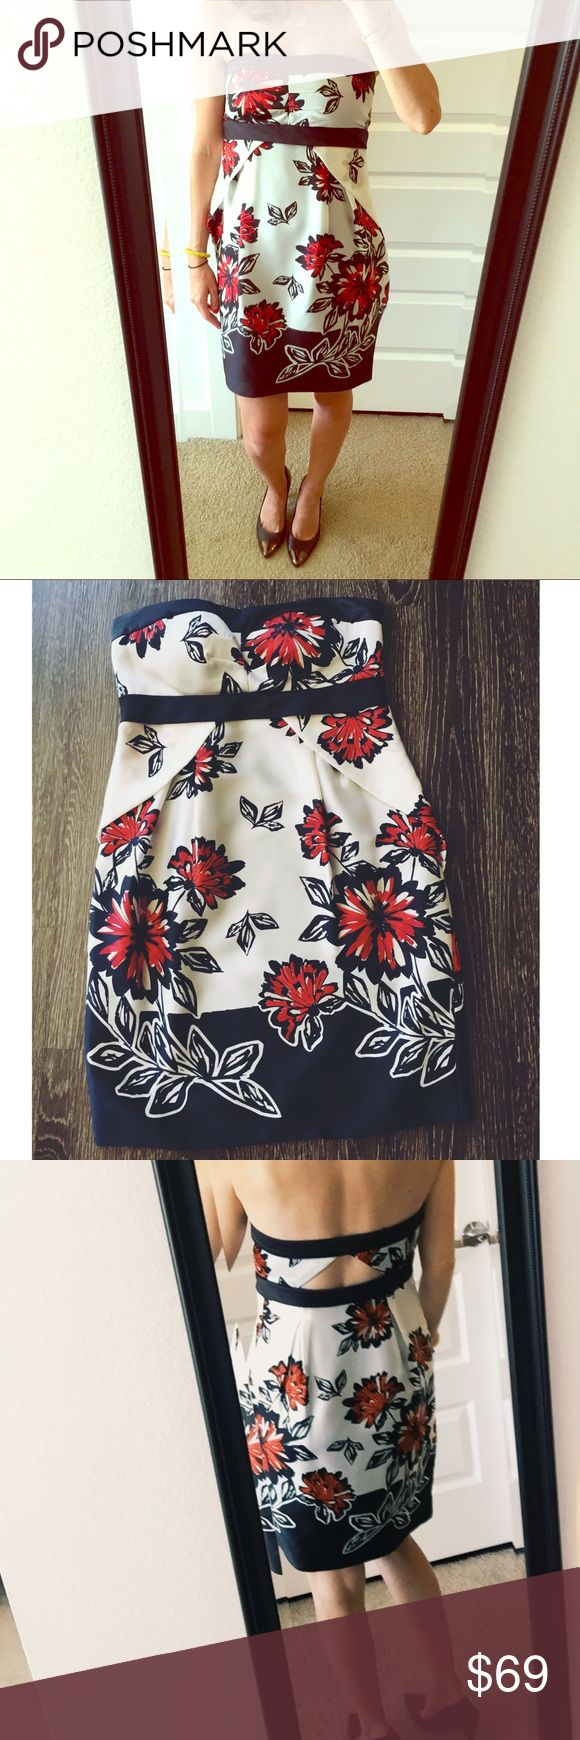 PRICE CUT Size 2 BCBG flower dress with cutout Size 2 BCBG red, black and white silky cocktail dress! Sexy triangle back cut out - perfect for summer weddingshits above the knee. Has been worn twice. Has built in cups. BCBG Dresses Mini